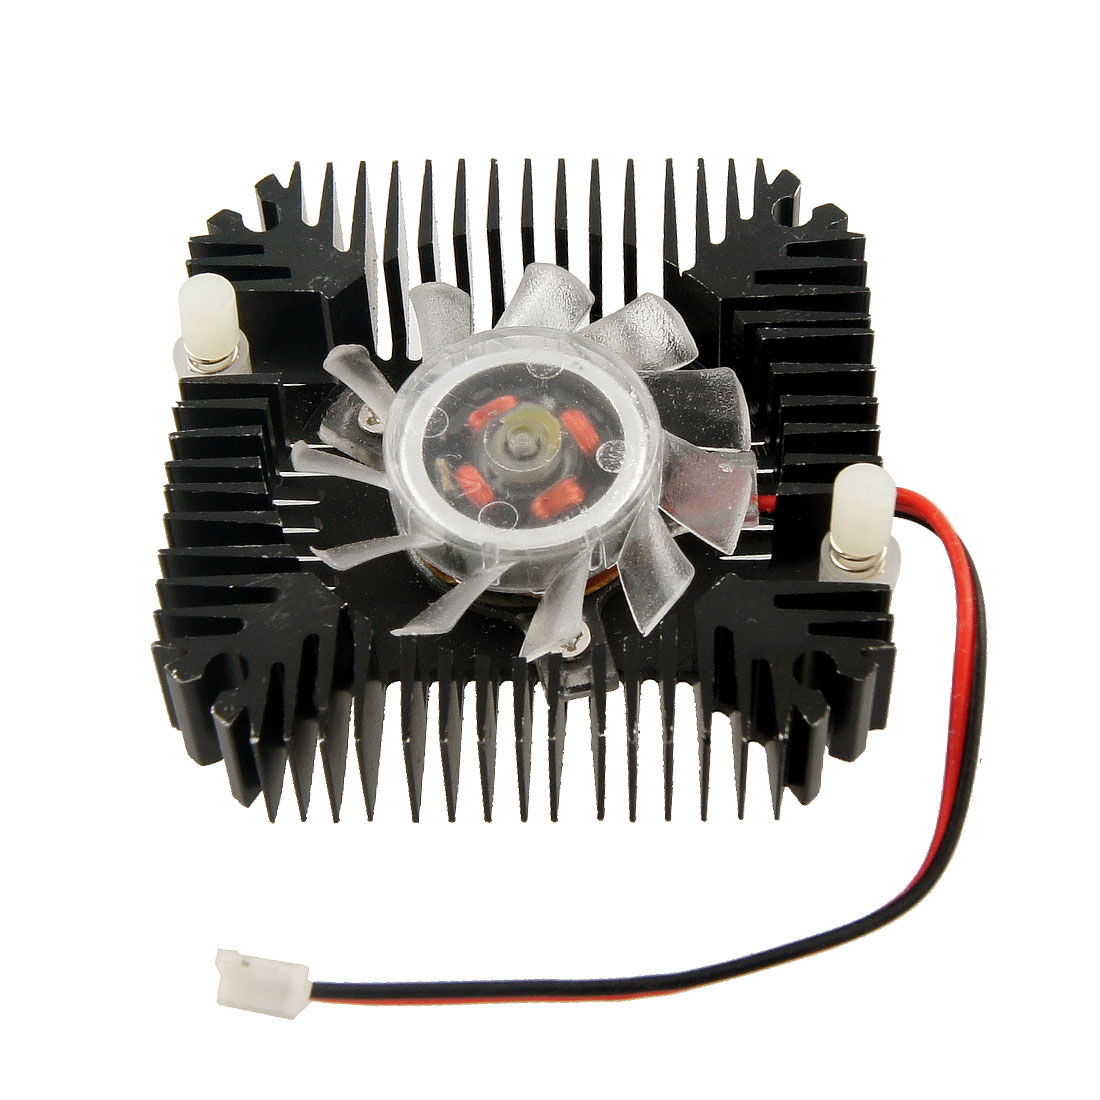 Black Plastic 11 Paddle Square DC 12V 0.1A Video Card Cooler Fan